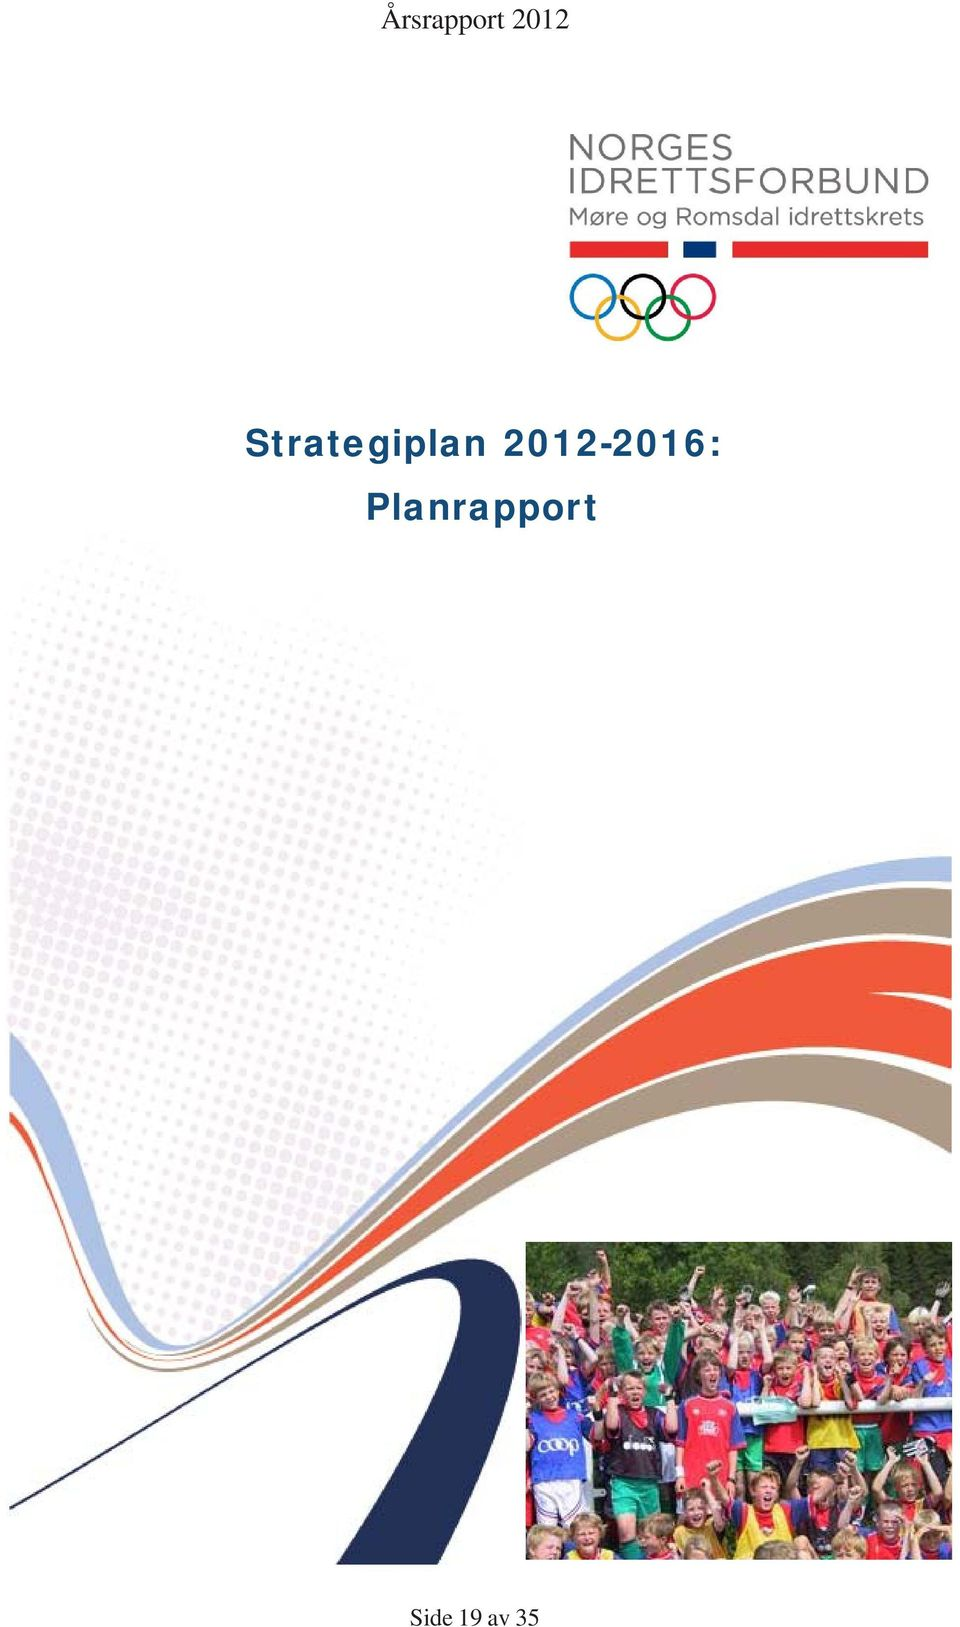 Planrapport